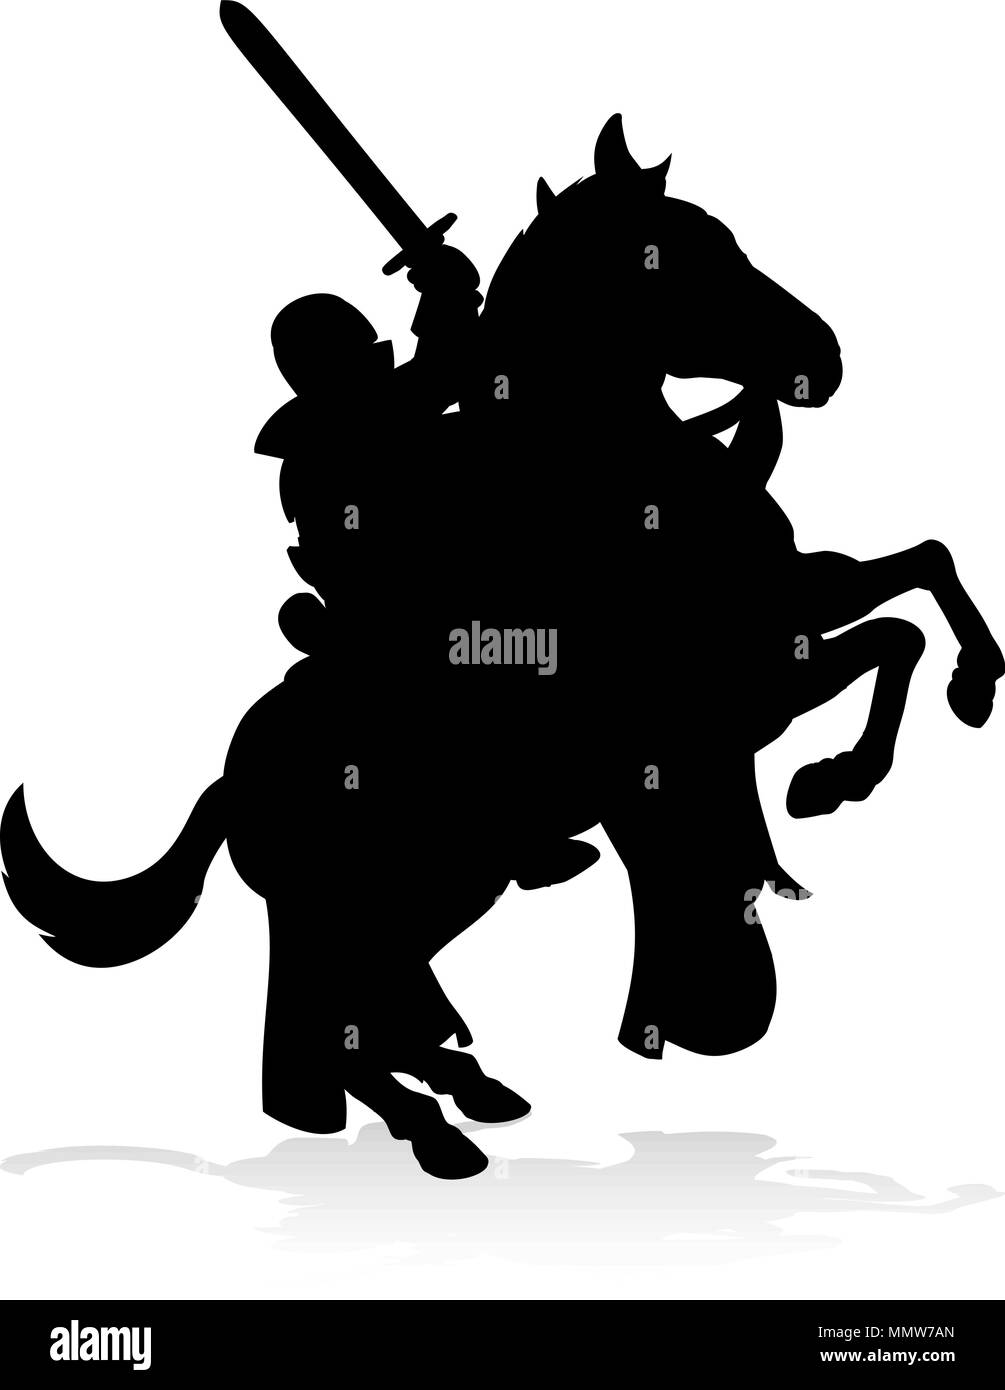 Silhouette Knight on Horse - Stock Vector